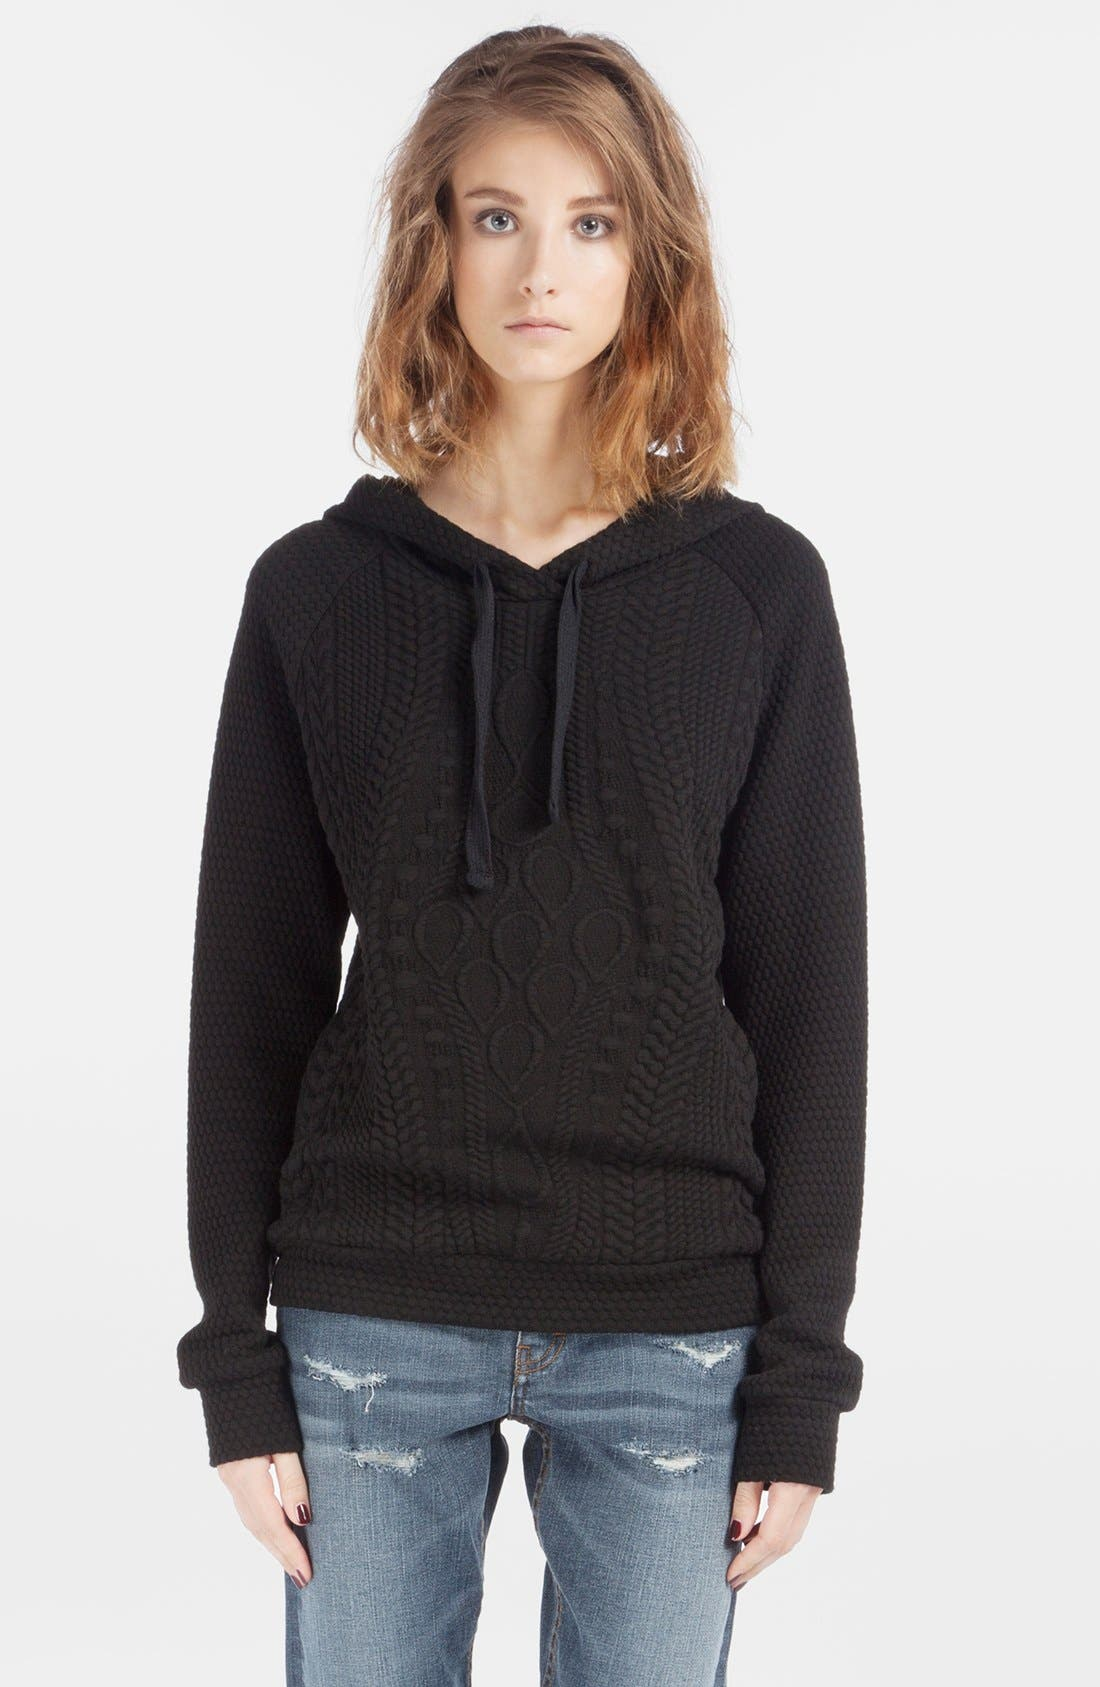 Alternate Image 1 Selected - maje 'Dodu' Knit Sweatshirt